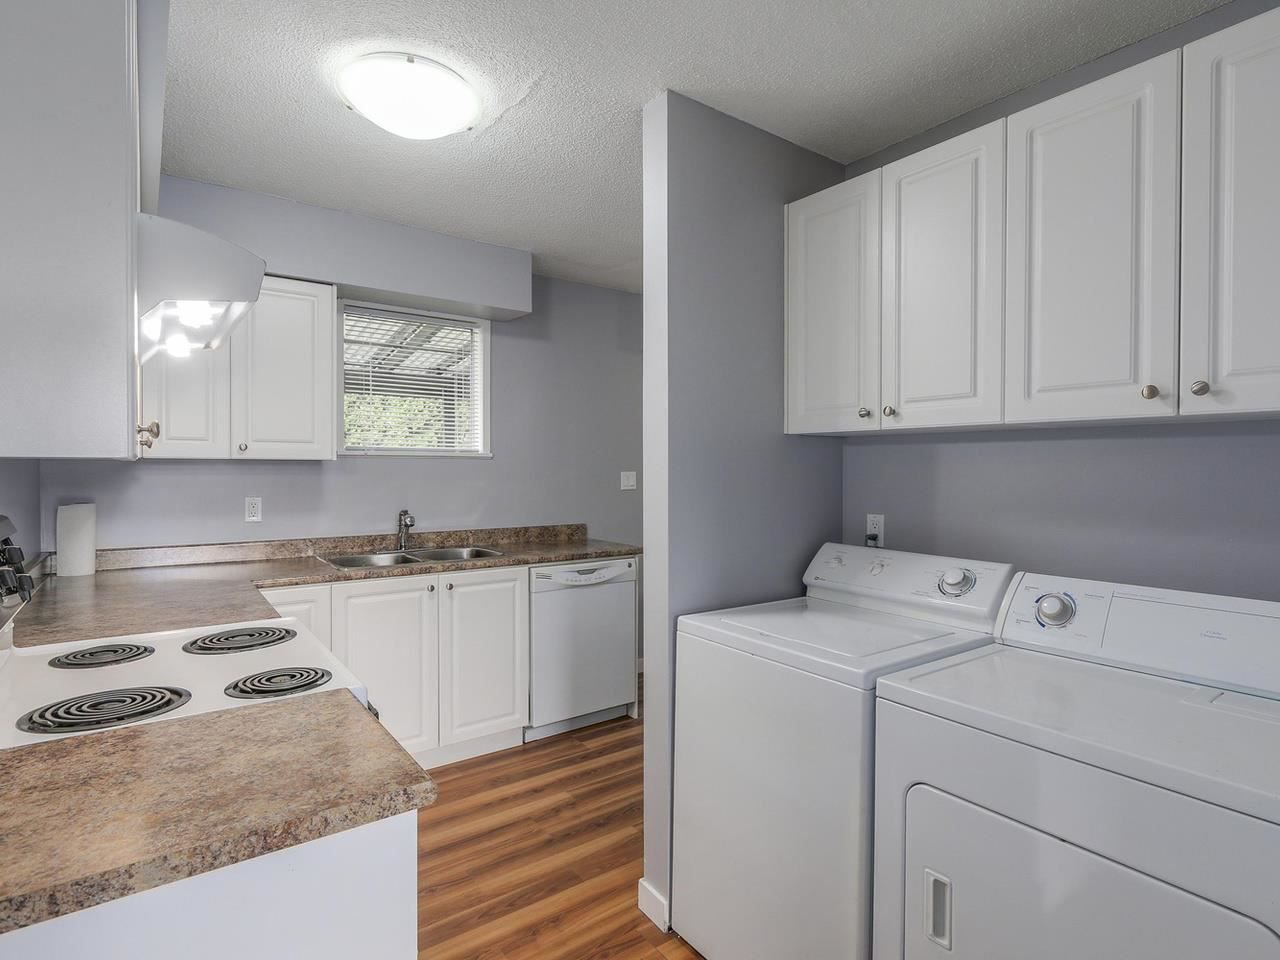 """Photo 10: Photos: 1673 GREENMOUNT Avenue in Port Coquitlam: Oxford Heights 1/2 Duplex for sale in """"OXFORD HEIGHTS"""" : MLS®# R2221936"""